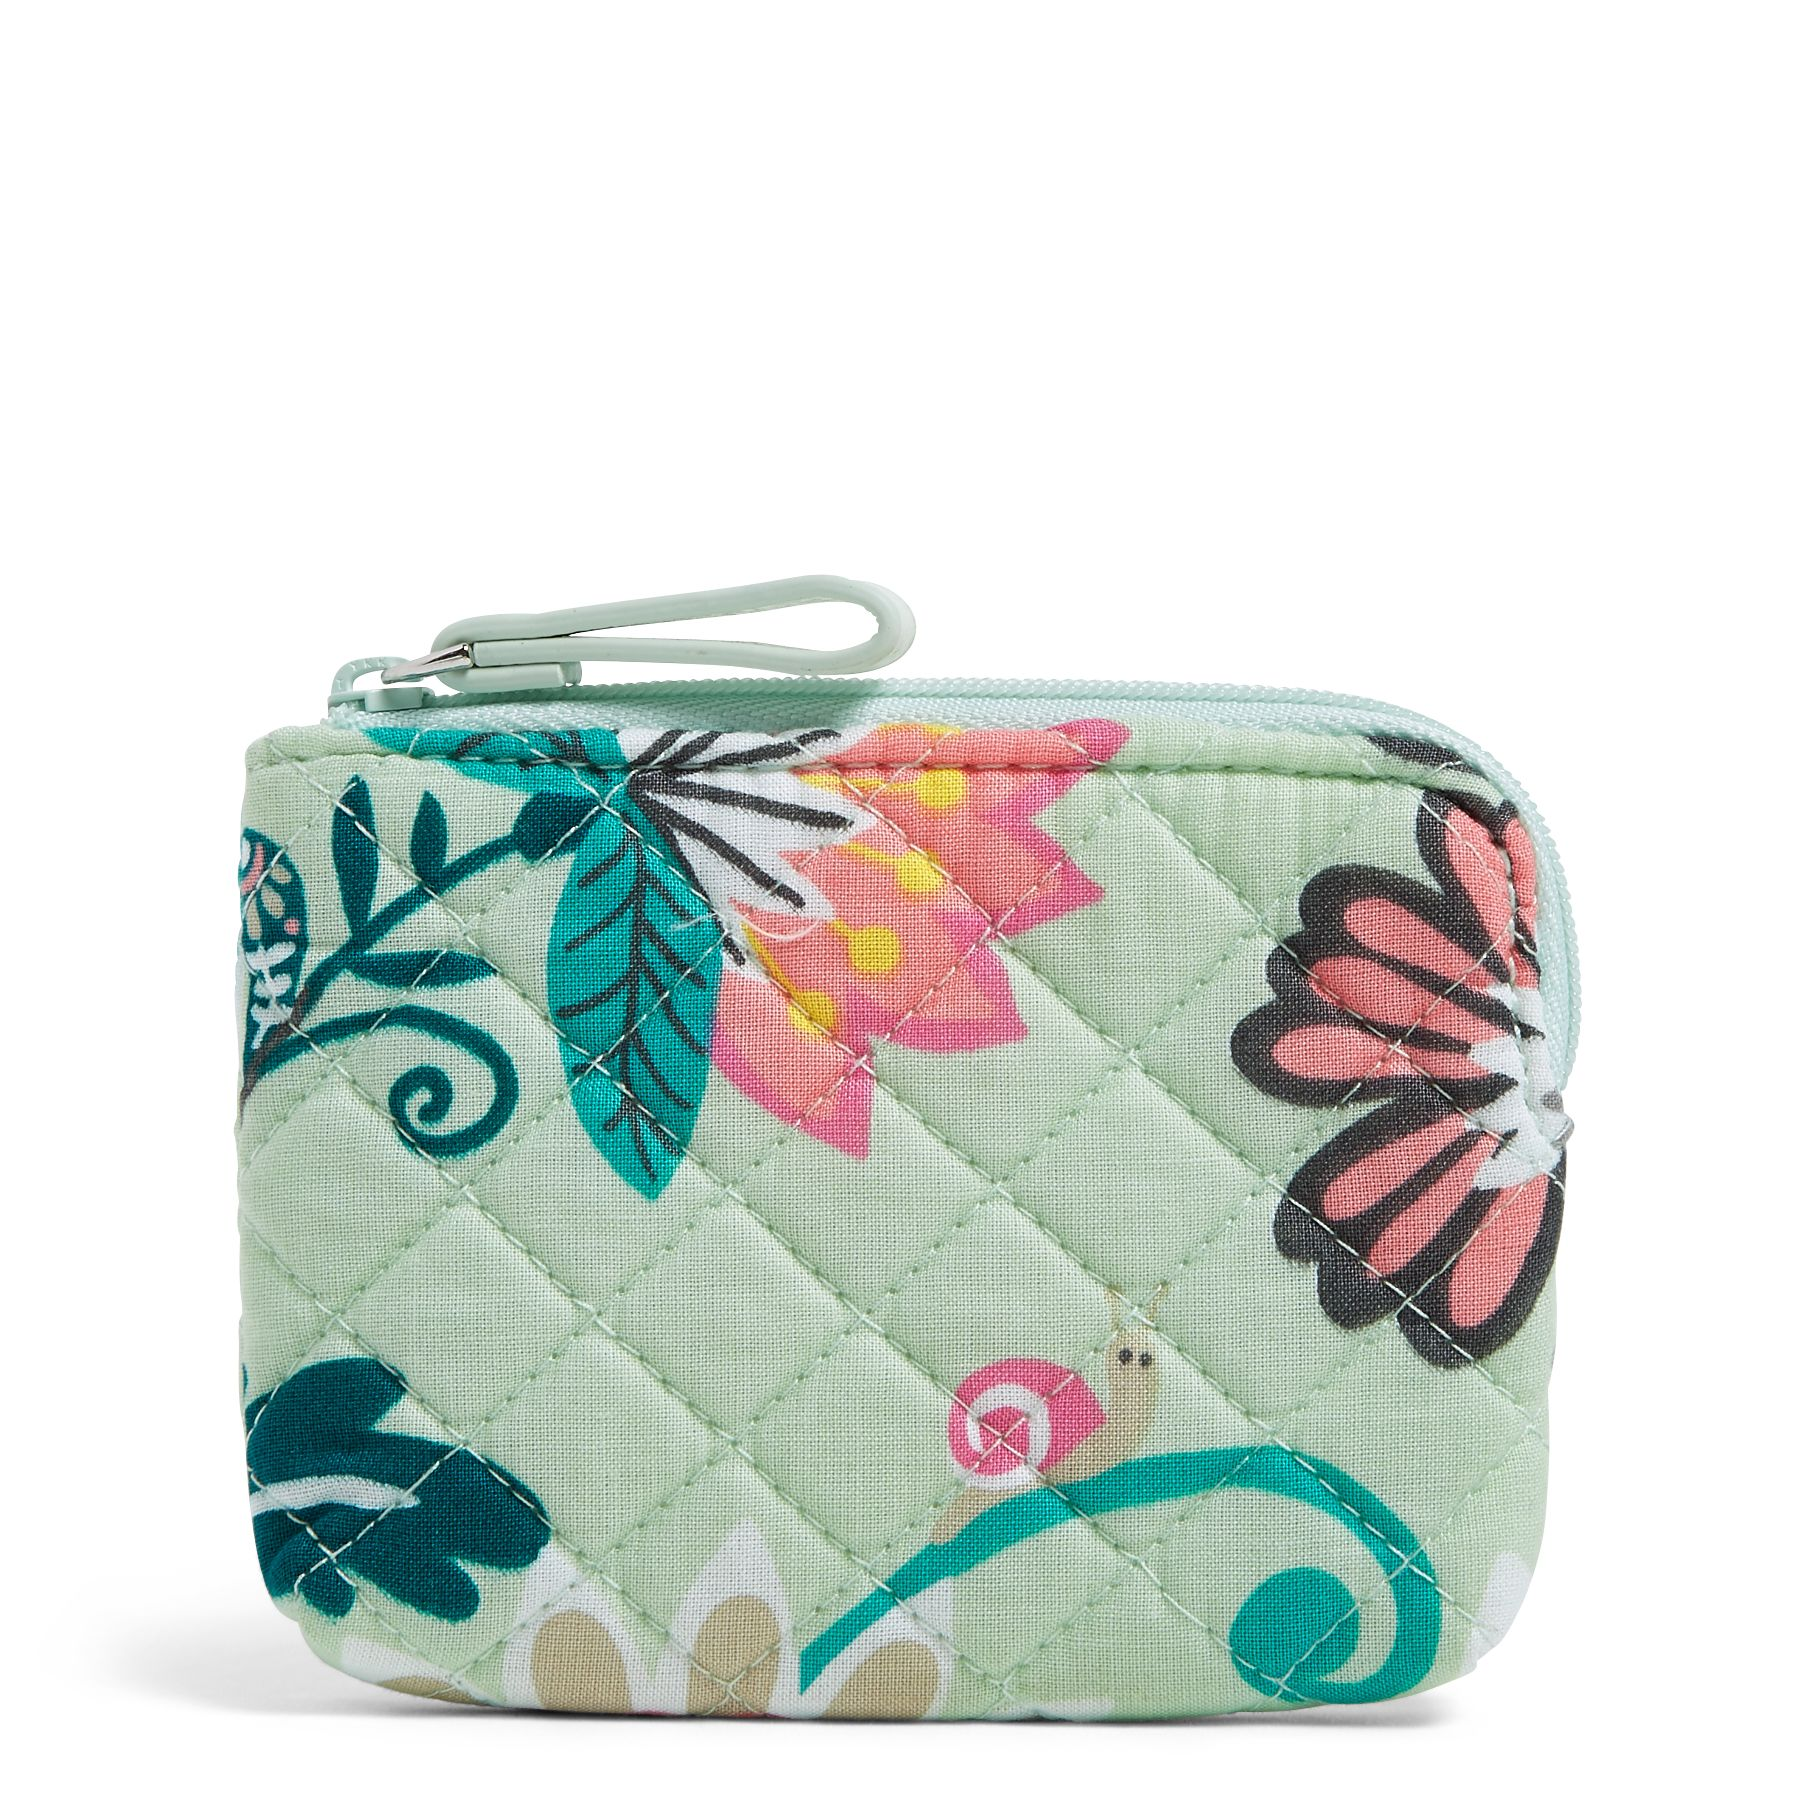 Vera Bradley Coin Purse, Green (886003604250 Accessories) photo